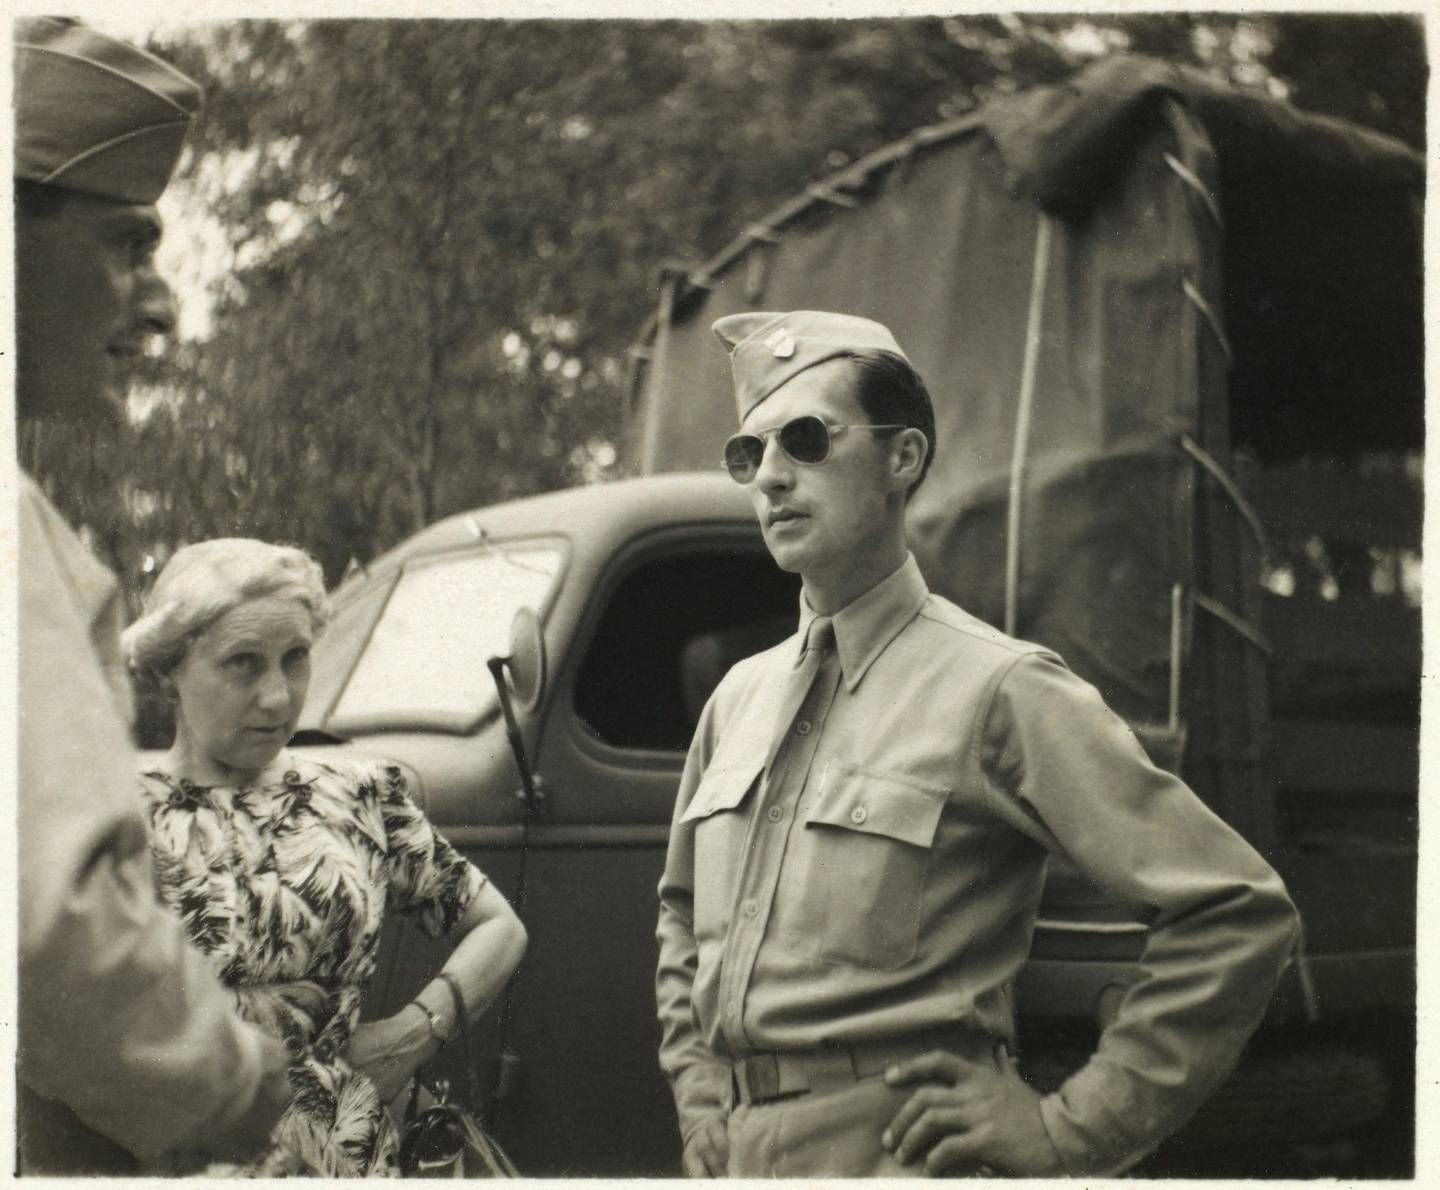 Soldier in Uniform and Aviator Sunglasses with Another Soldier and Civilian Woman, Portrait, WWII, HQ 2nd Battalion, 389th Infantry, US Army Military Base, Indiana, USA, 1942. (Photo by: Universal History Archive/UIG via Getty Images)